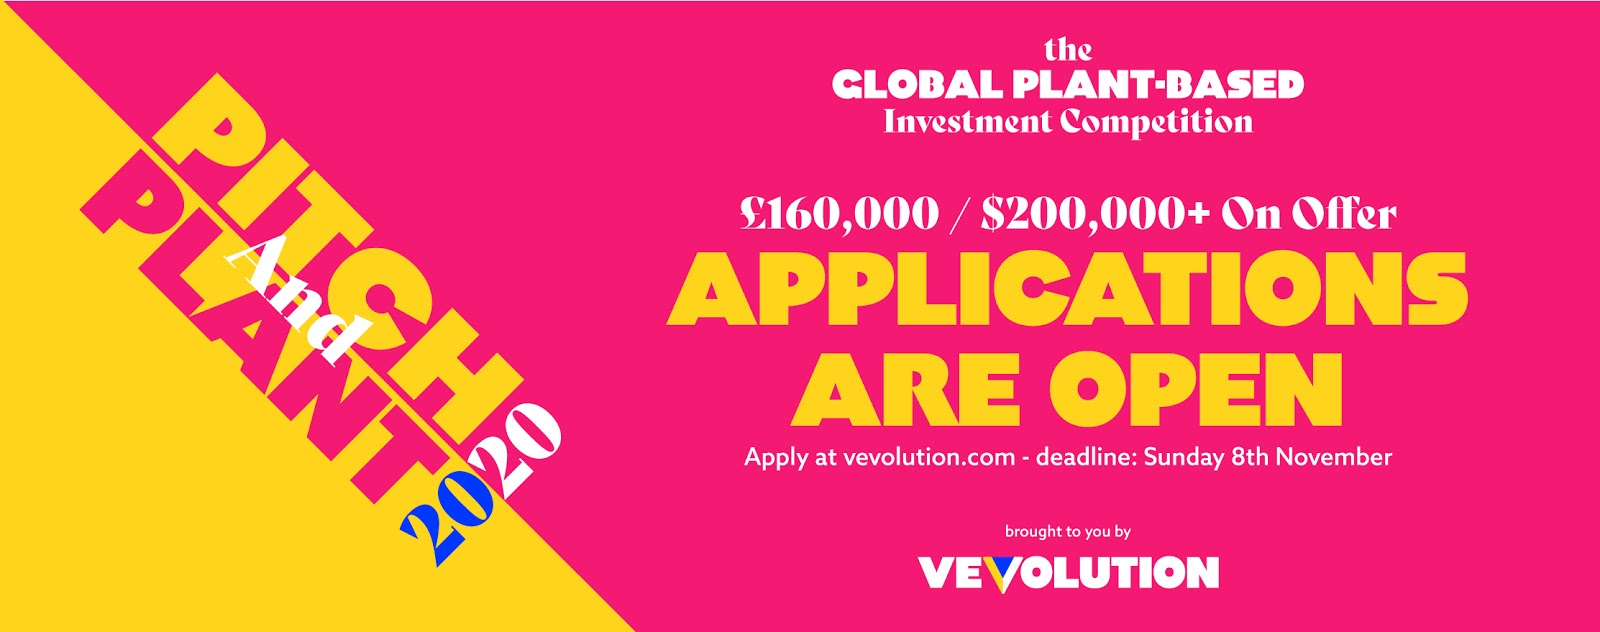 Vevolution Gather Leading Plant Based Investors To Invest £160,000+($200,000+ / €175,000+) Through First Global Edition of Plant Based Investment Competition Pitch Plant